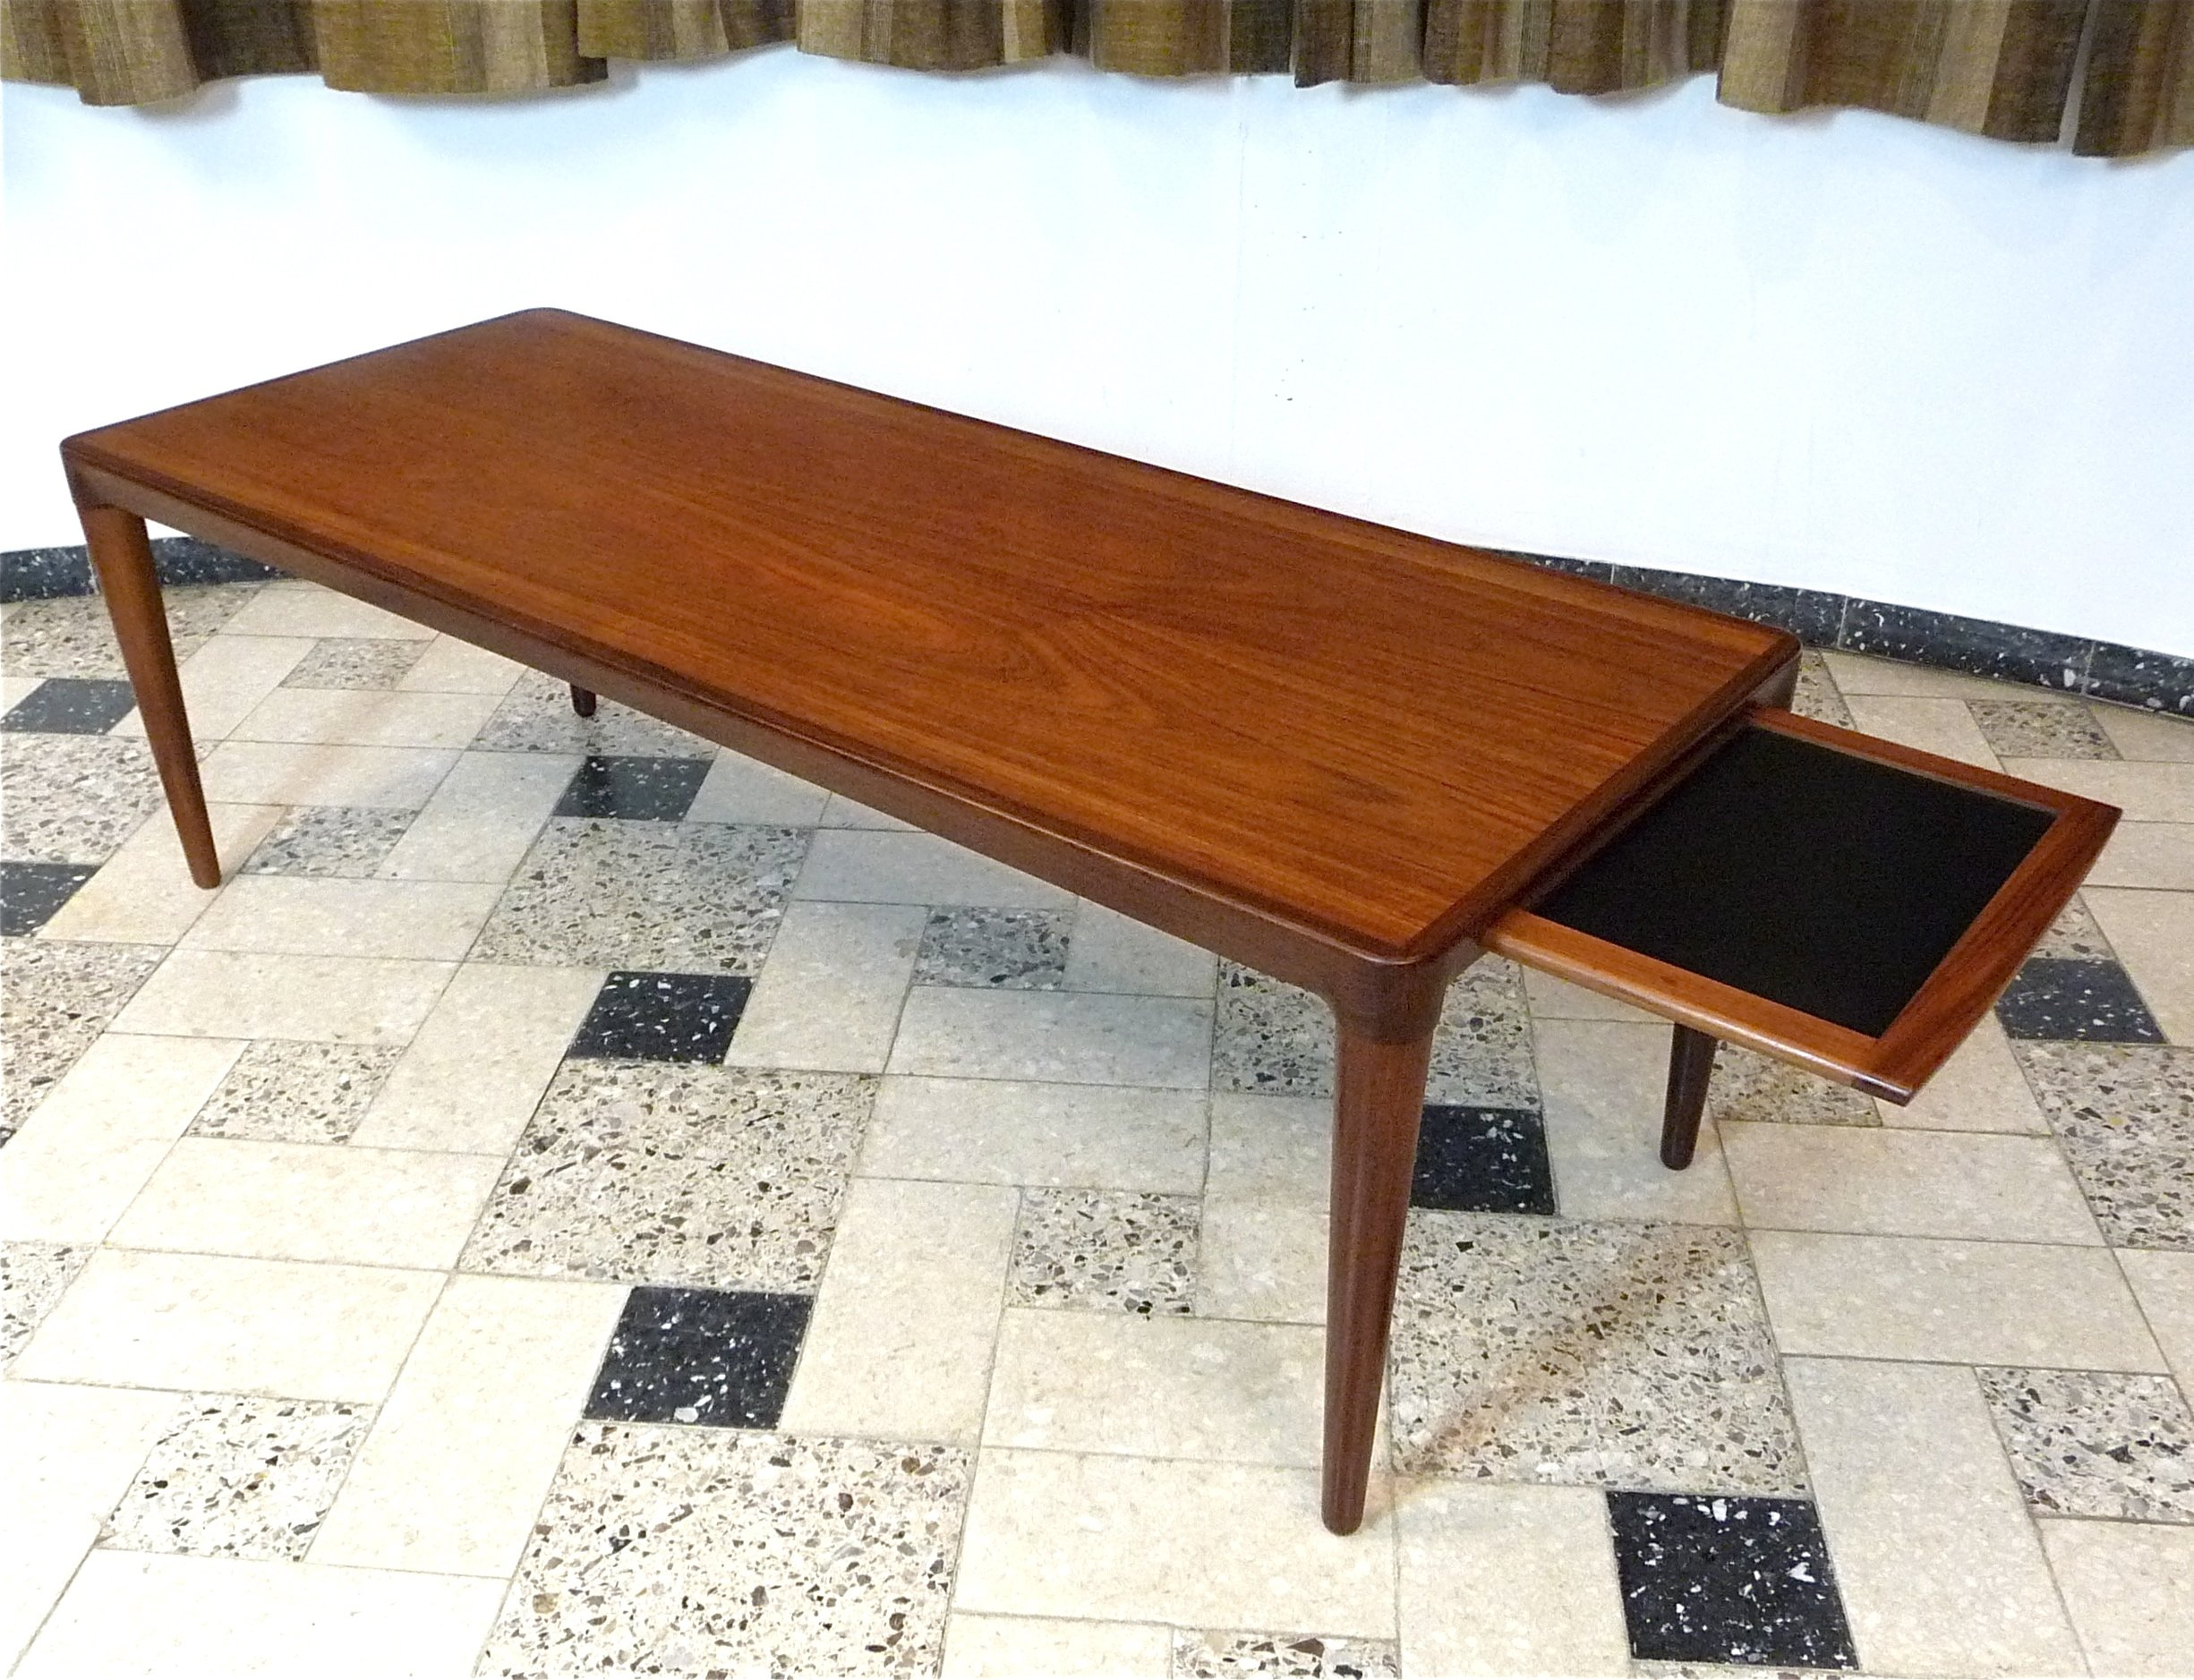 Teak Coffee Table with pull out tray 1960s